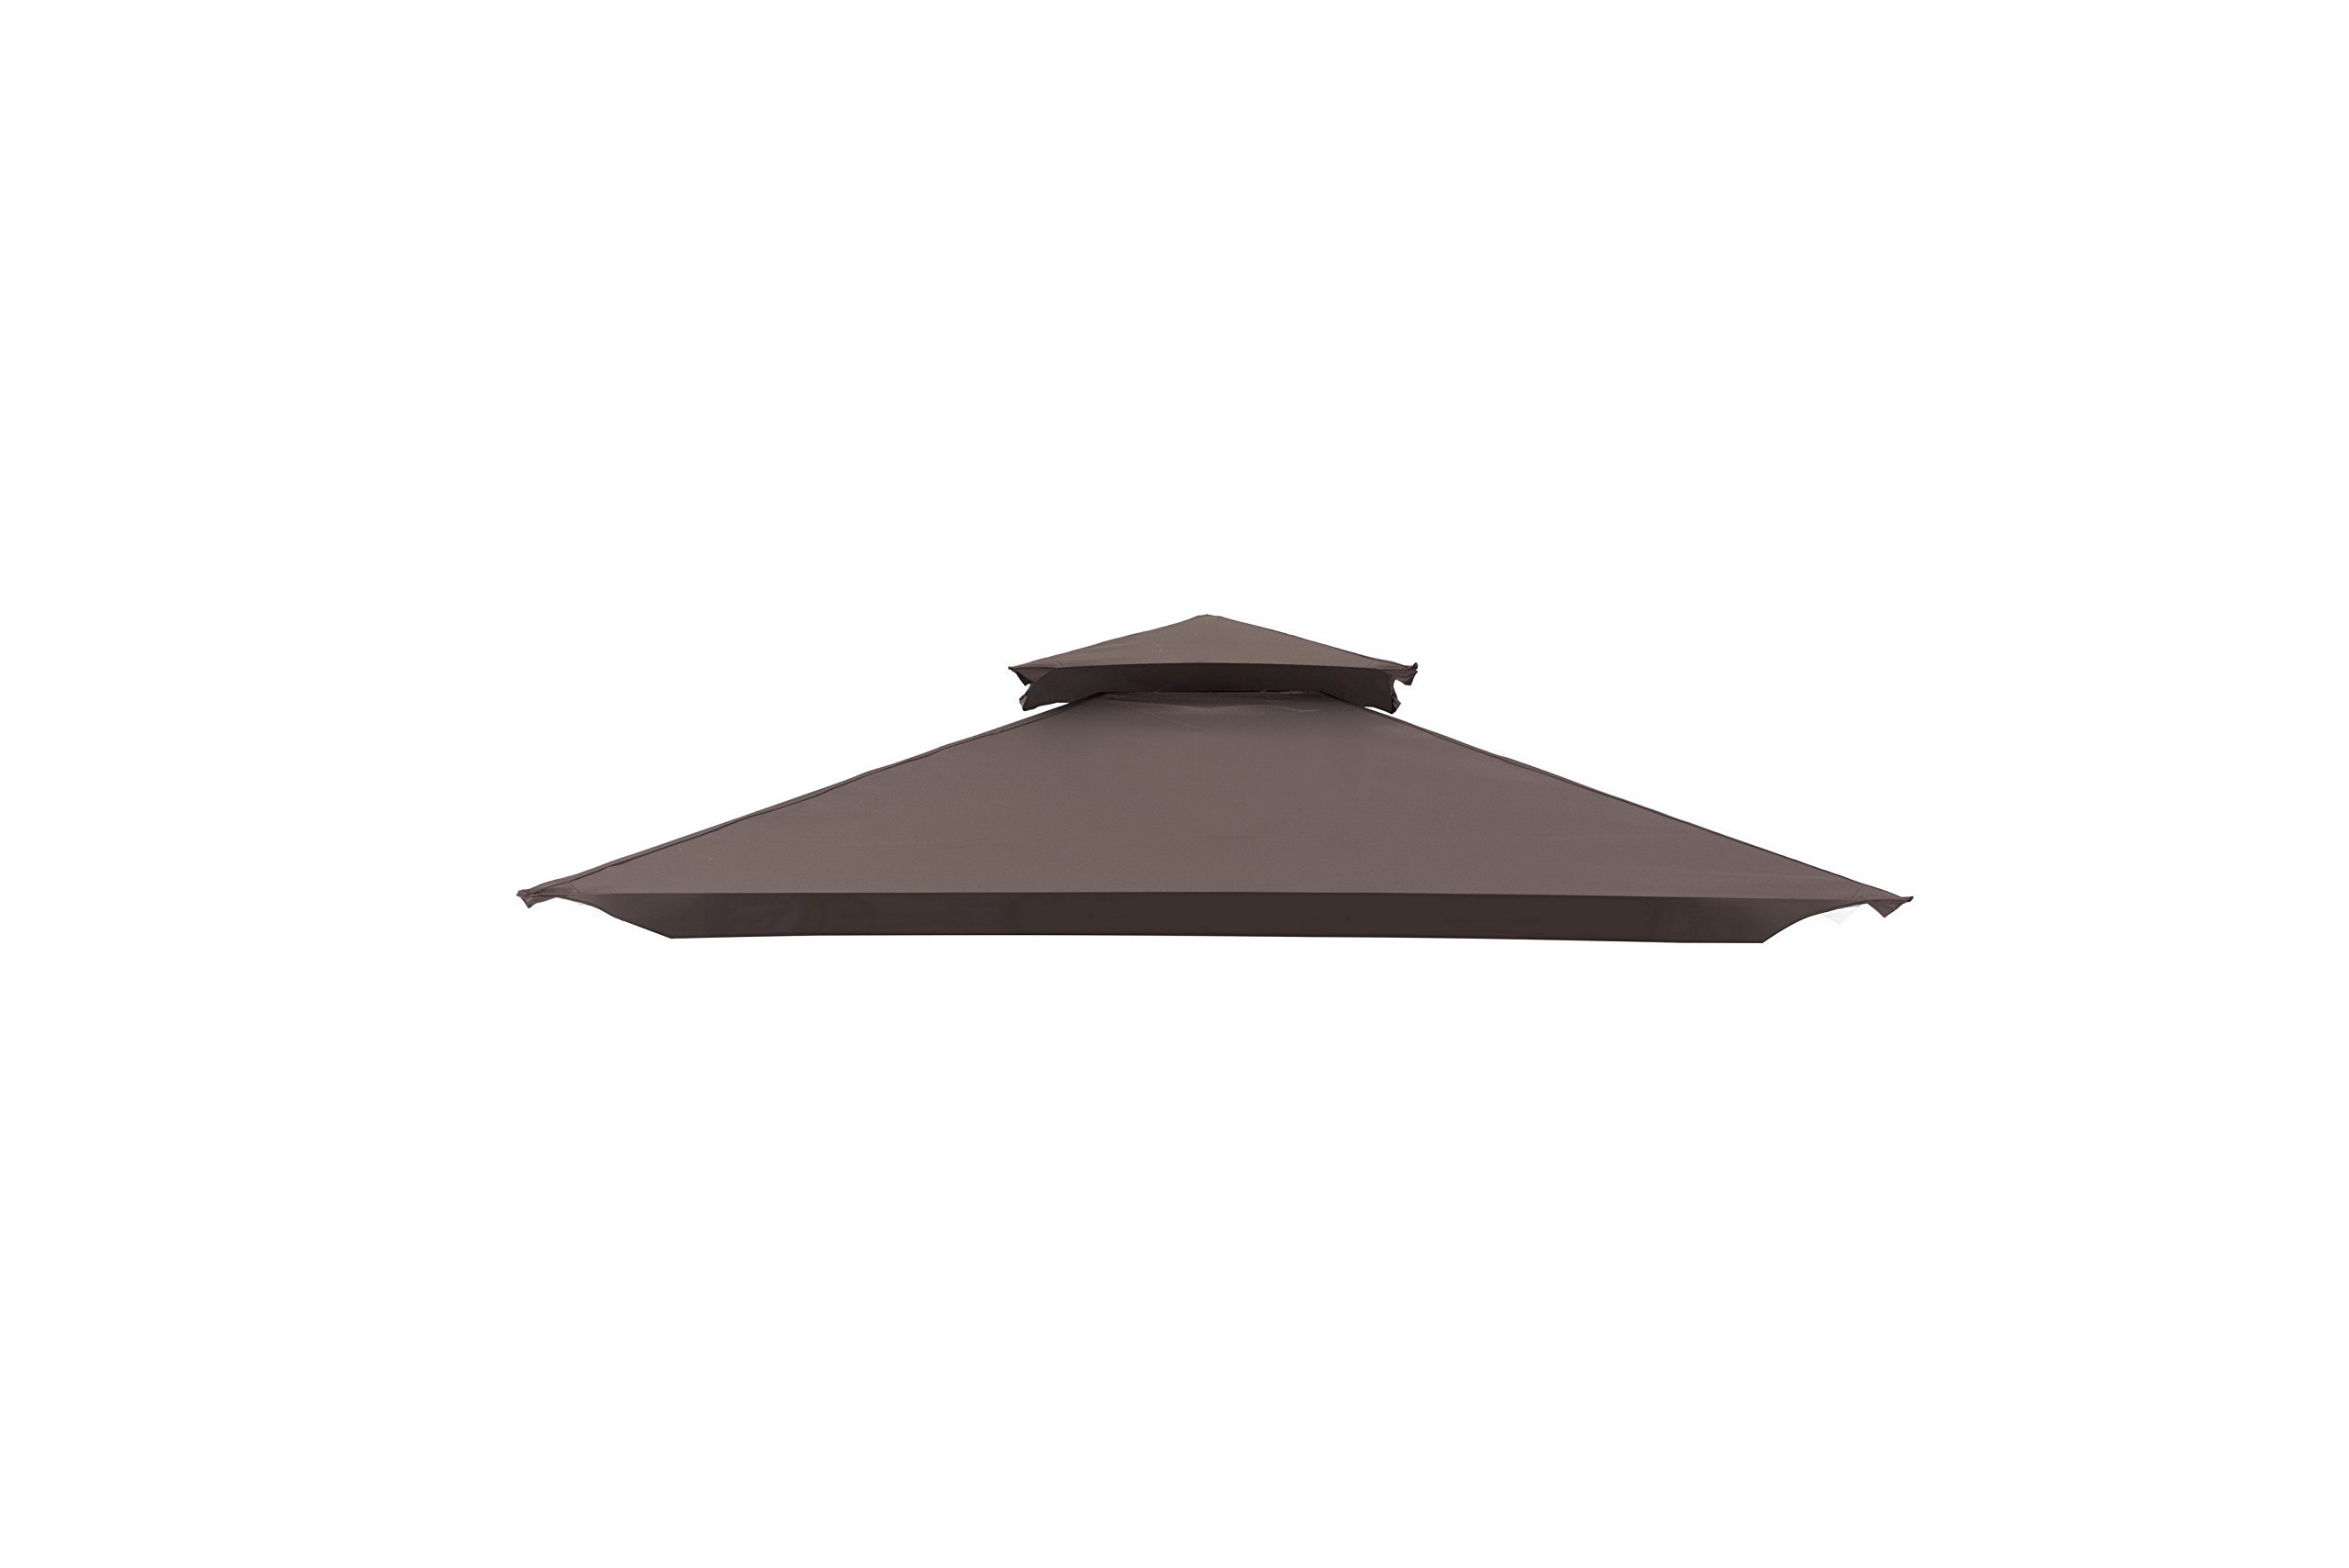 Sunjoy L-GG001PST-F-PK Replacement Canopy, Brown